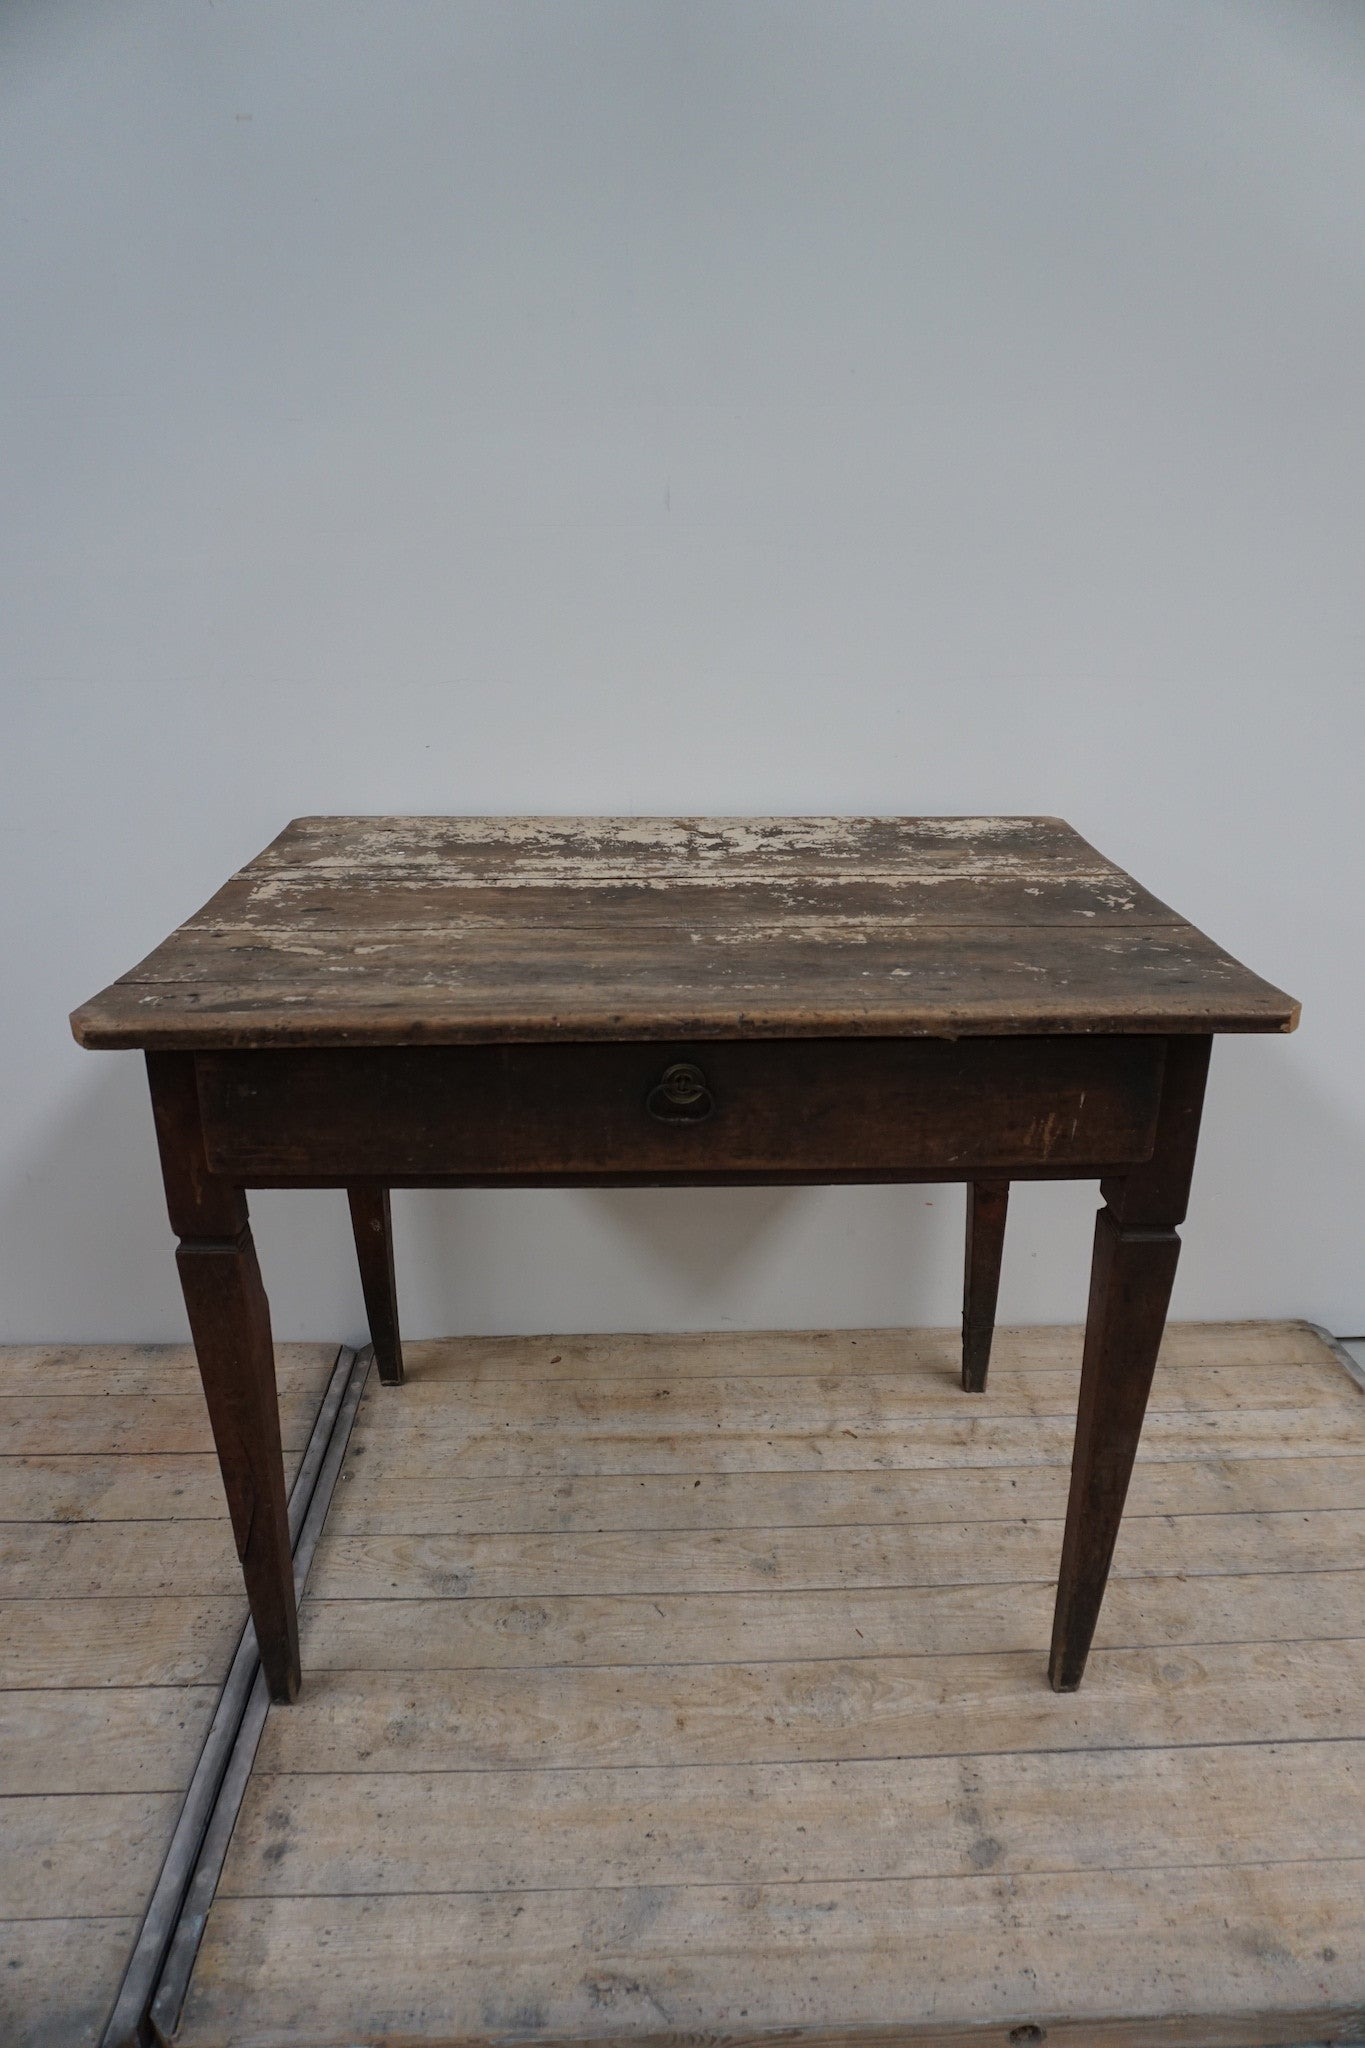 Antique French Rustic Wooden Desk